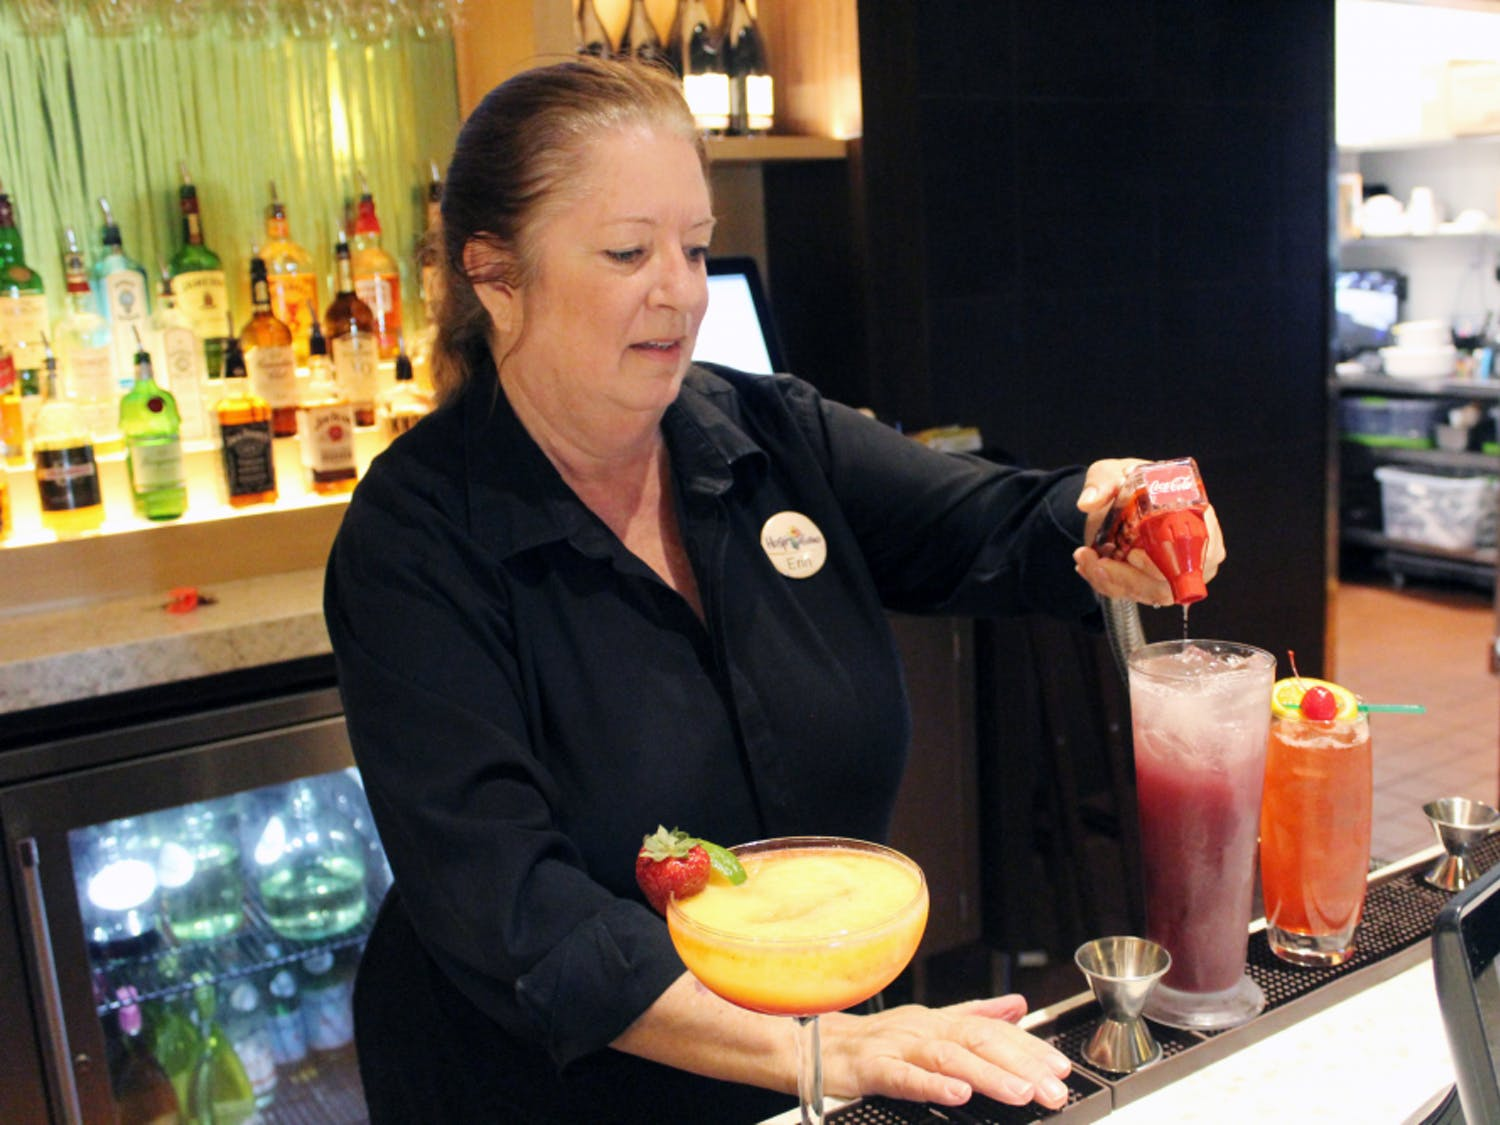 Erin Gosselin tops off a drink with Coca-Cola before handing it to a server Thursday. Gosselin is a bartender at the Olive Garden Italian Restaurant on Clark Butler Boulevard.